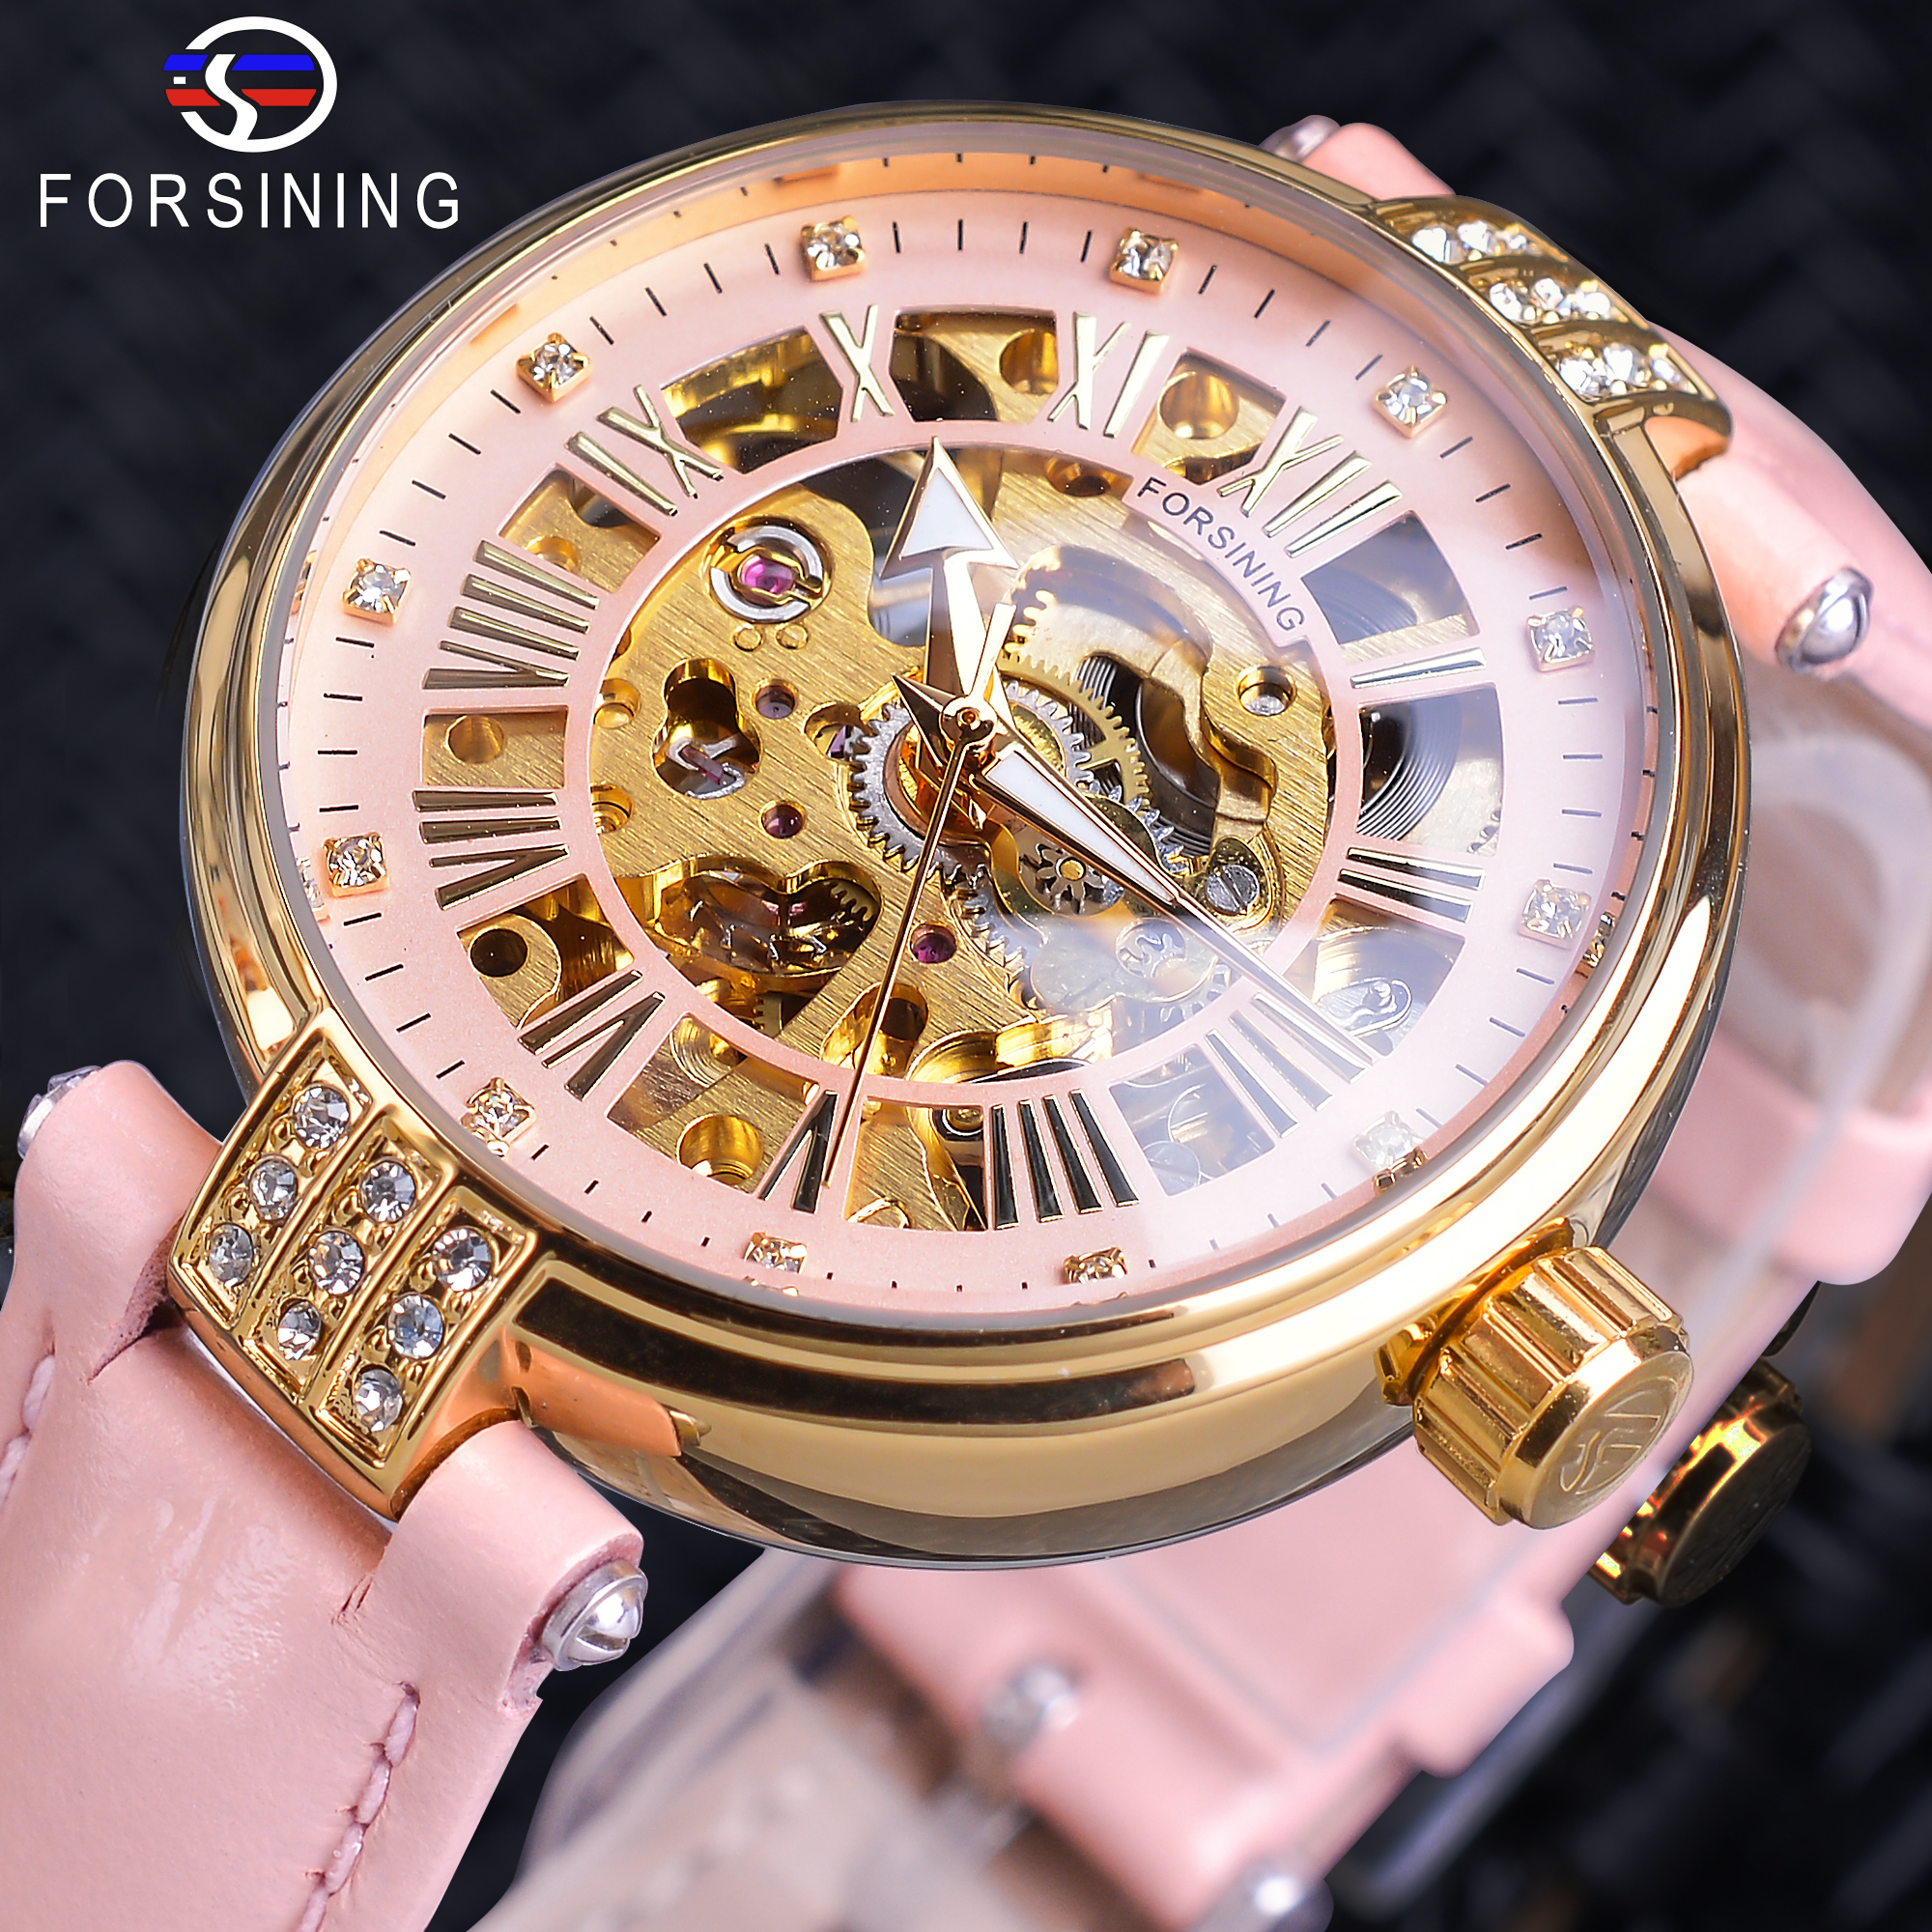 Forsining Pink Lady Diamond Automatic Watch Women Watches Top Montre Femme 2019 Gold Skeleton Relogio Feminino Brand Star Clock